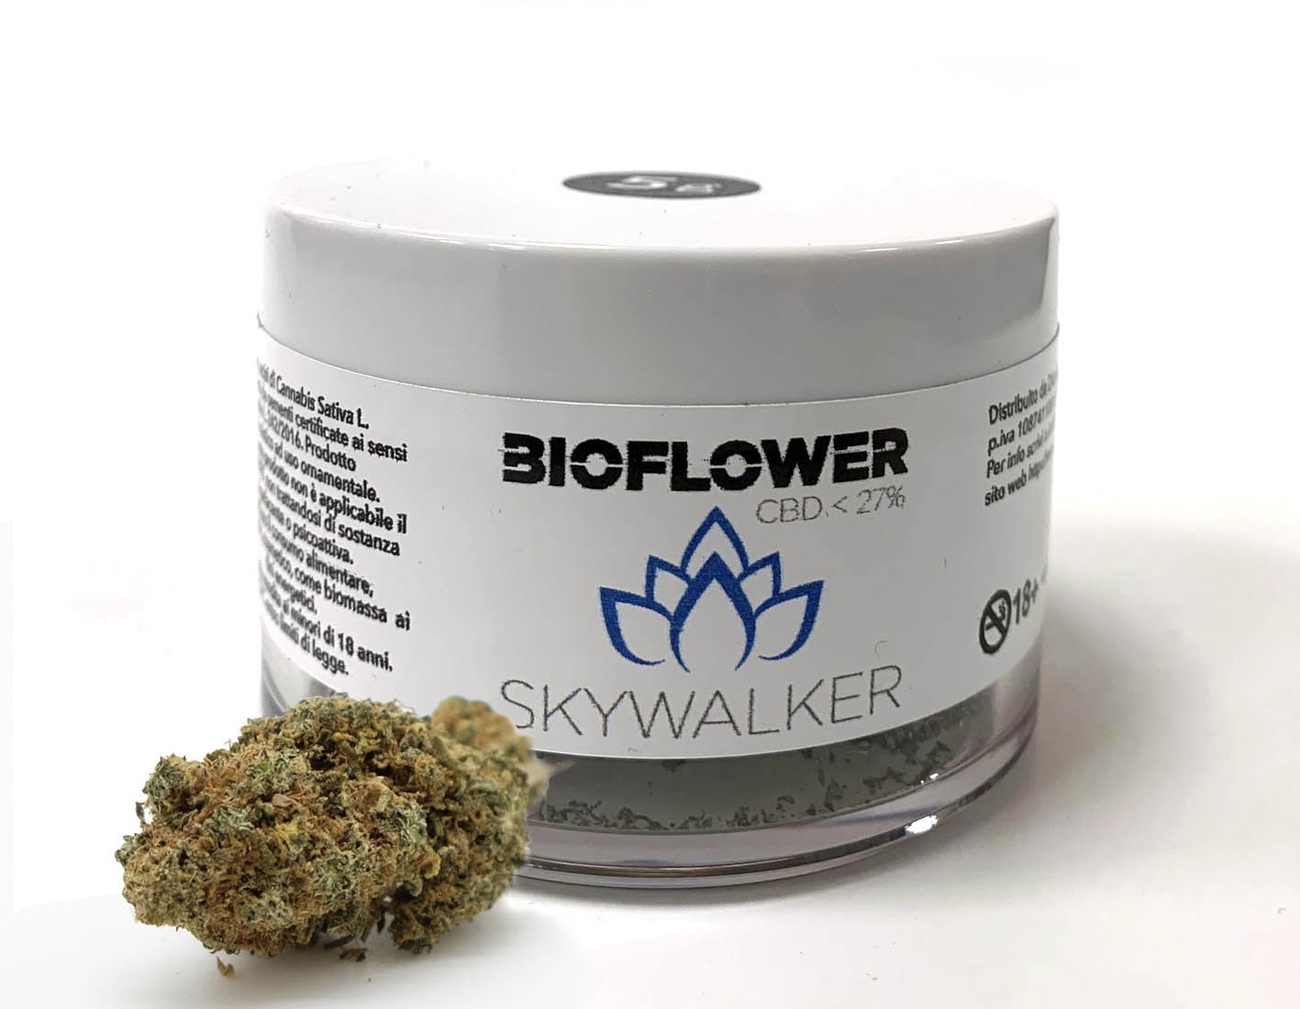 Bioflower Skywalker 27% cbd barattolo